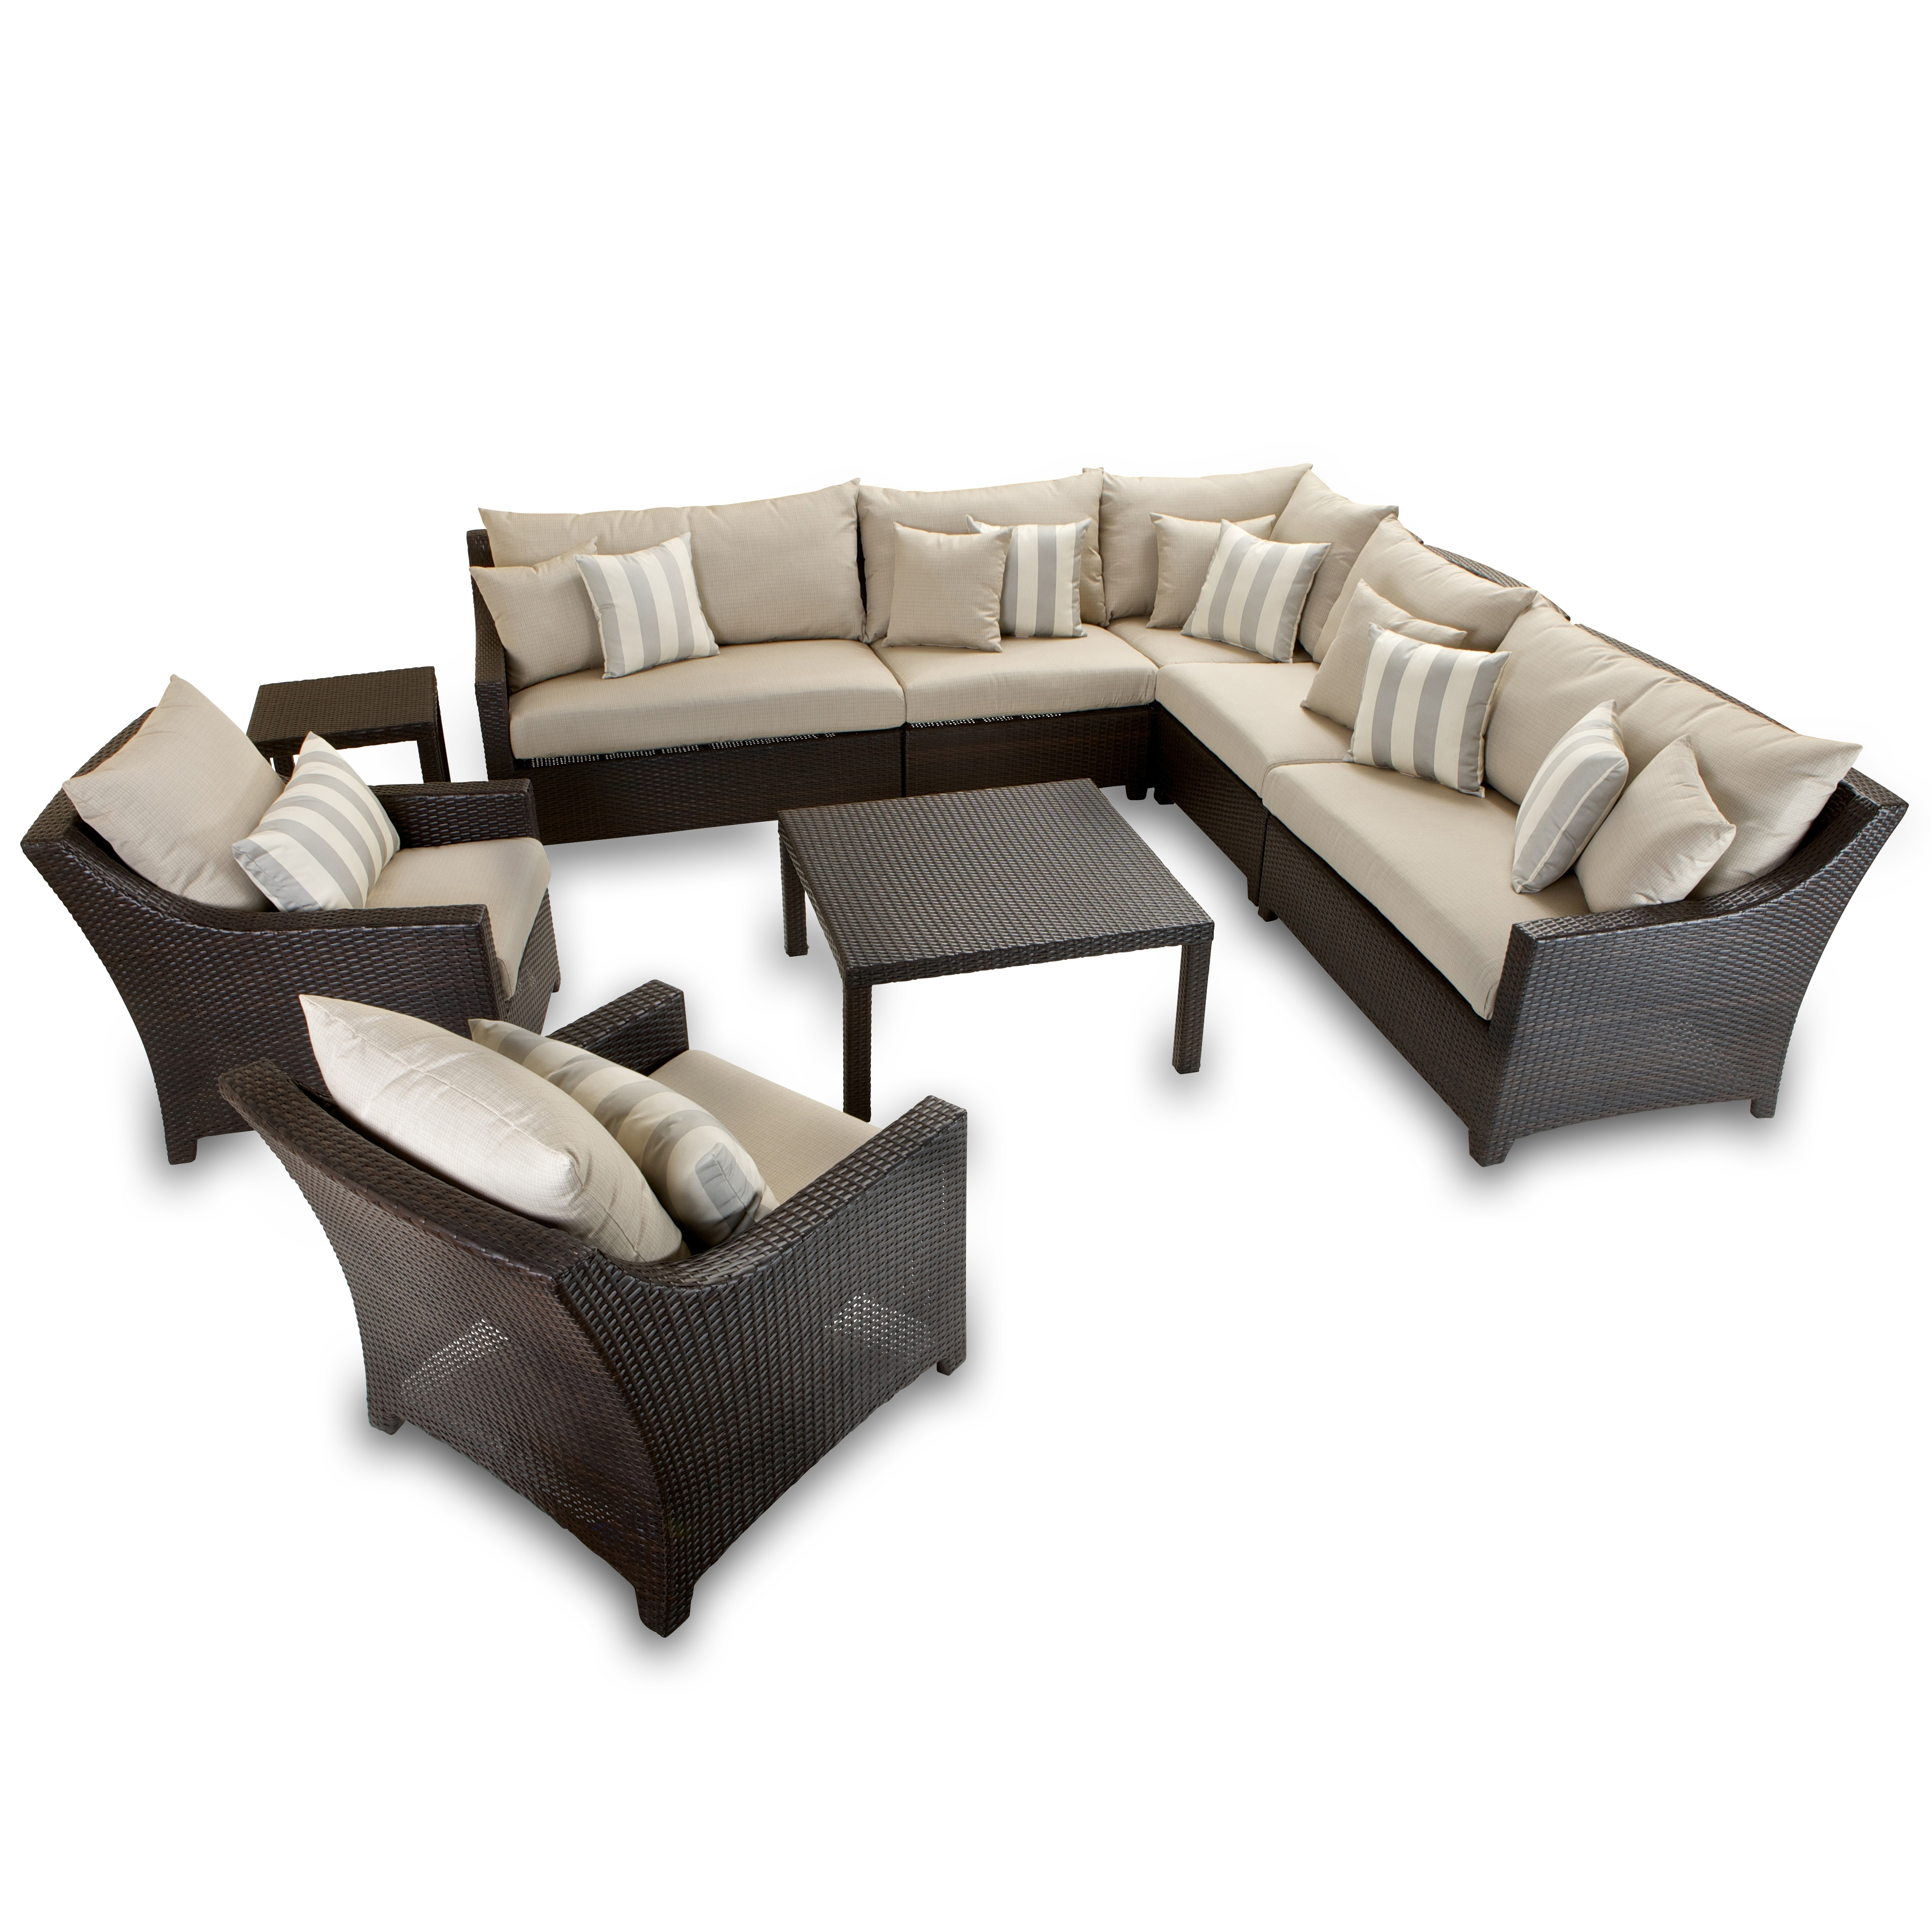 Kmart Sectional Sofa With Kmart Sectional Sofas (View 4 of 10)